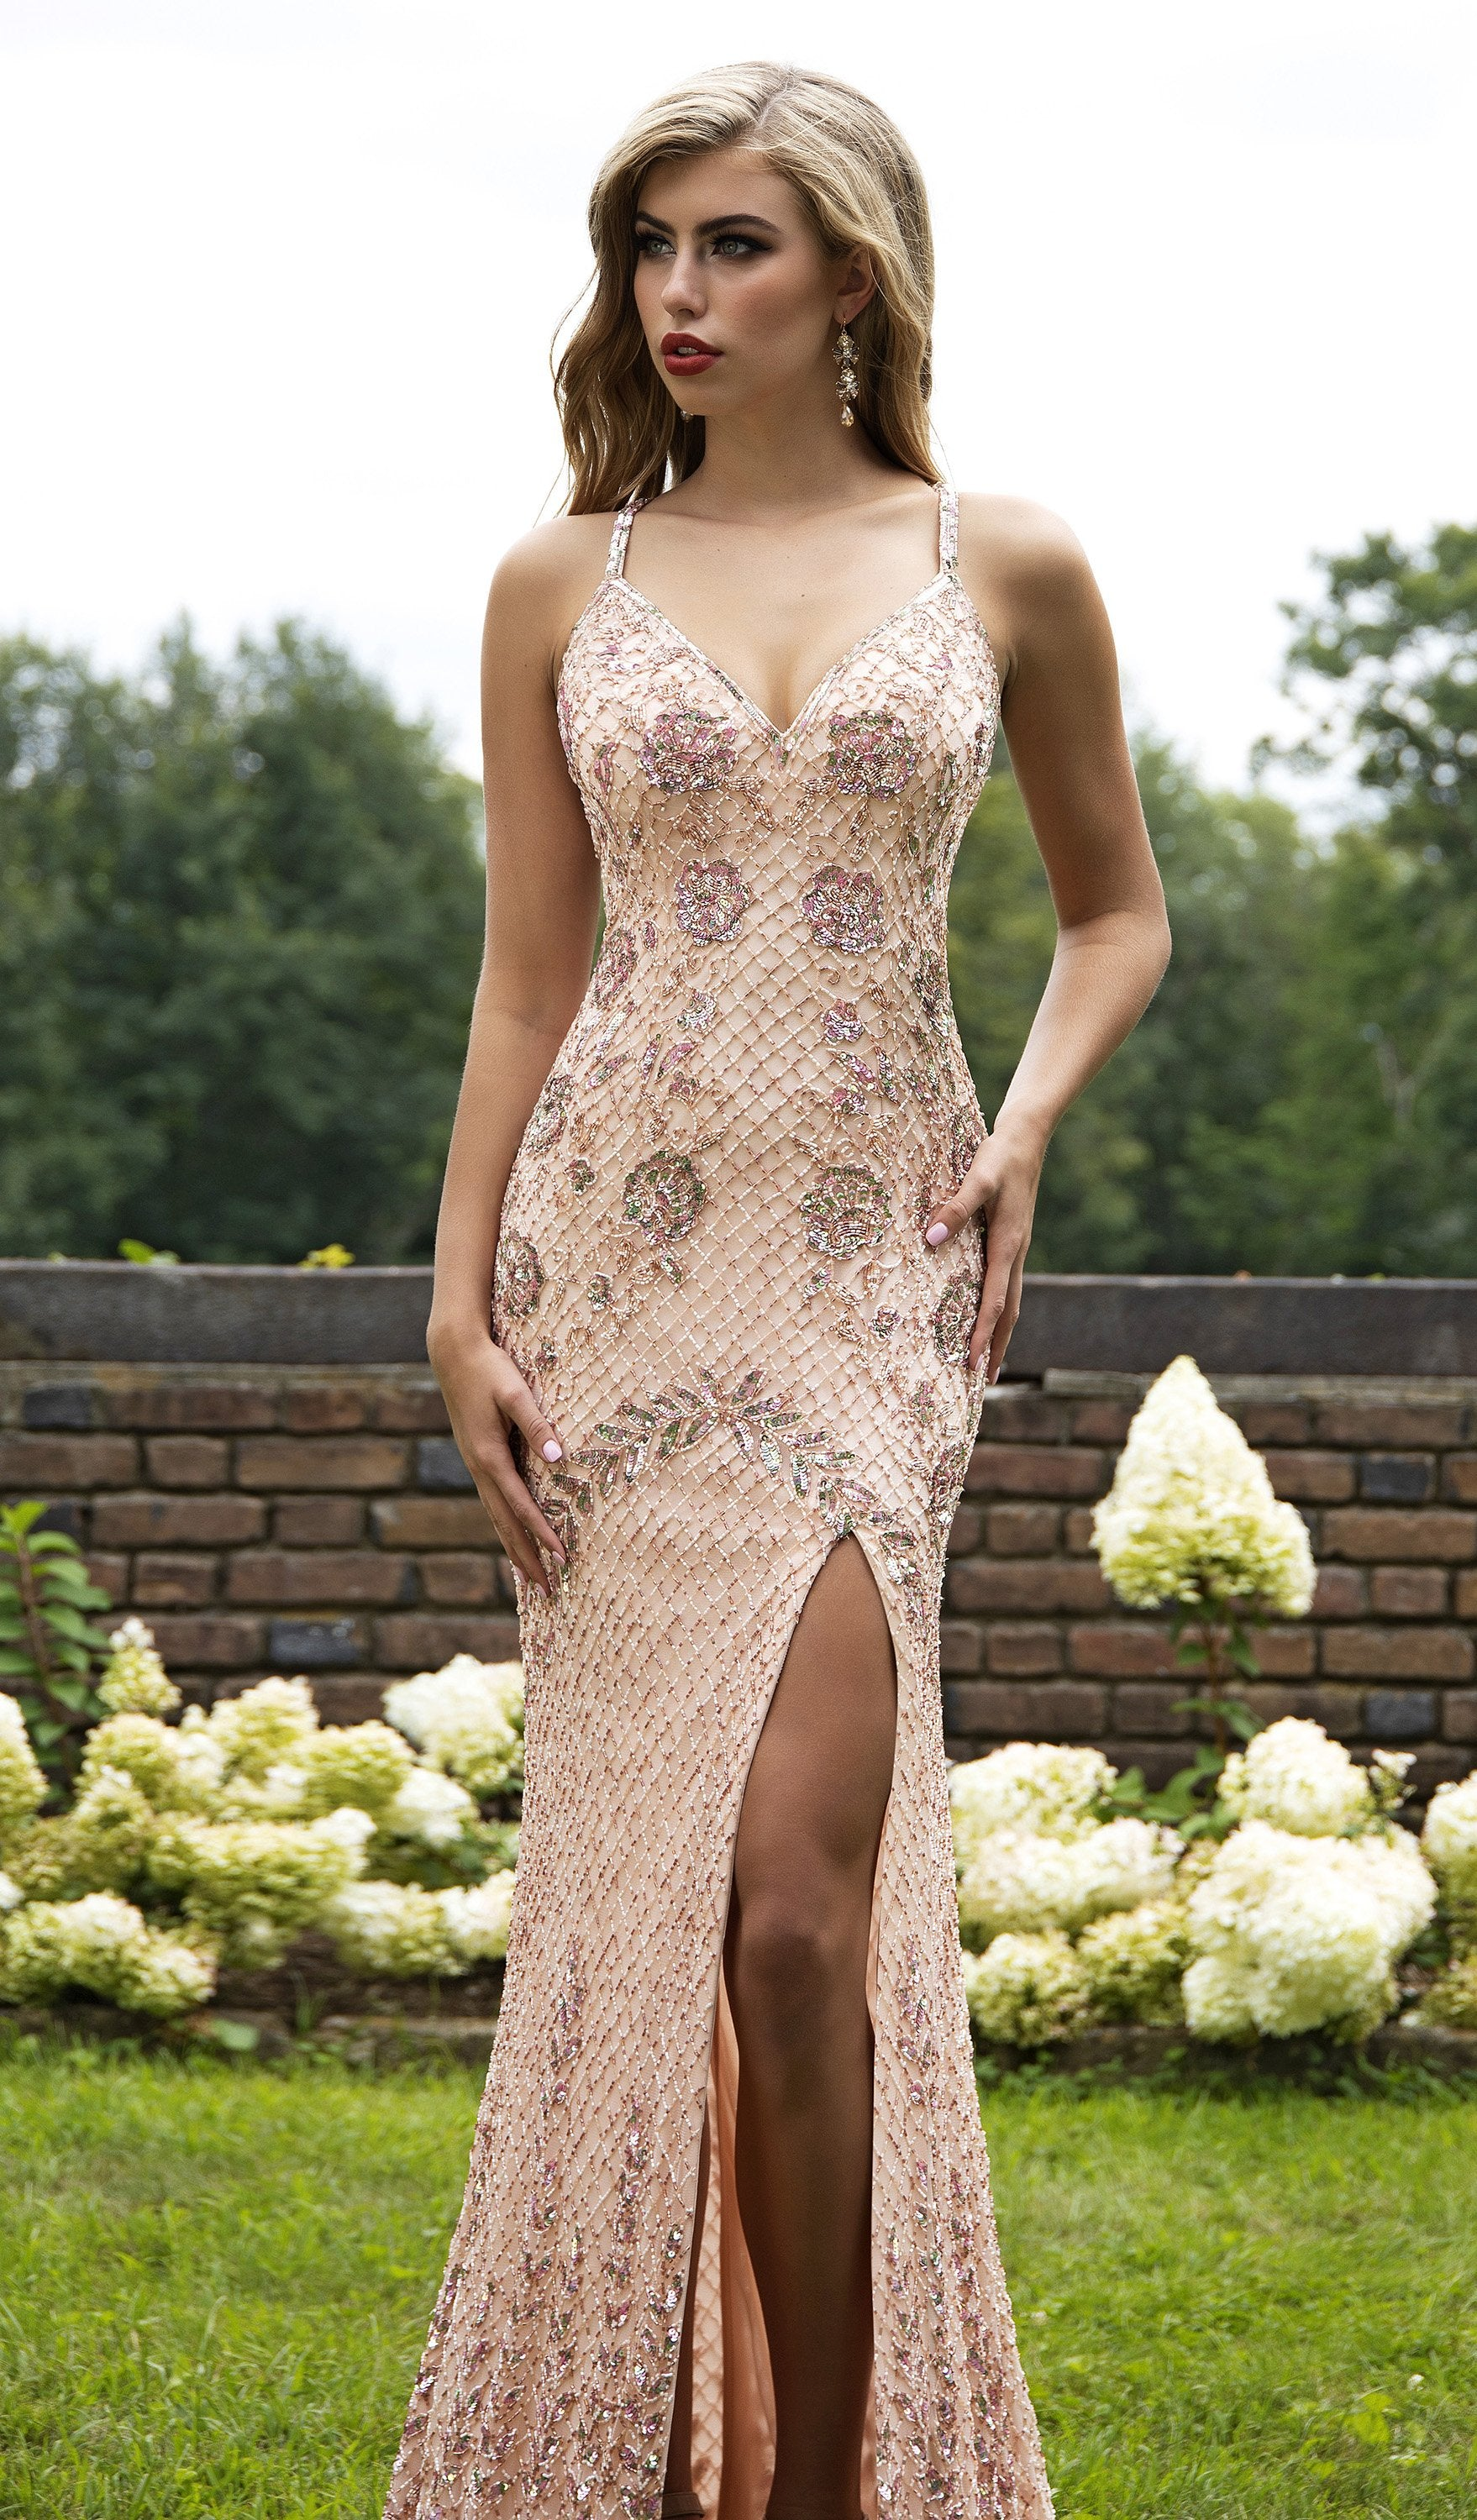 Primavera Couture - 3202 Embellished Plunging V-neck Trumpet Dress In Pink